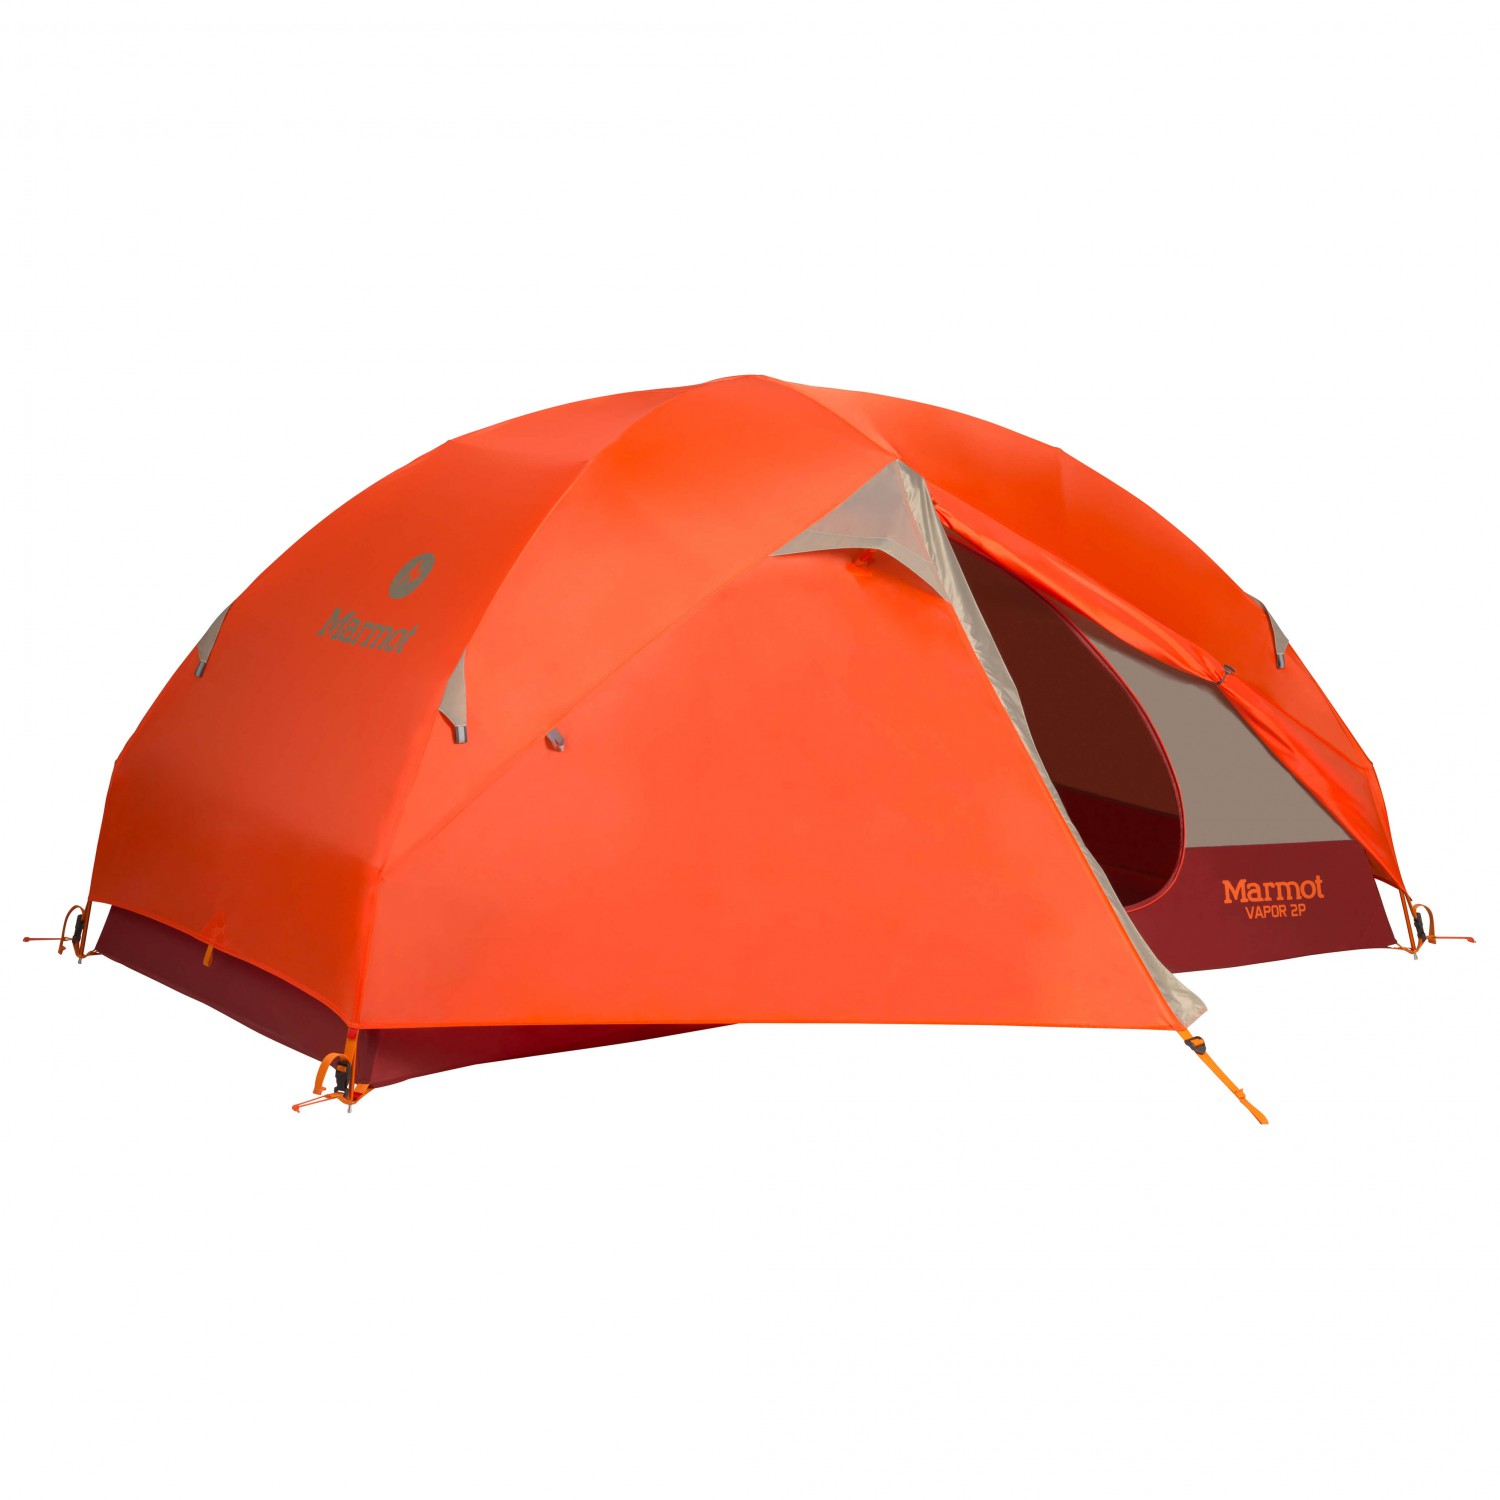 Marmot - Vapor 2P - 2-person tent ...  sc 1 st  Alpinetrek & Marmot Vapor 2P - 2-Person Tent | Free UK Delivery | Alpinetrek.co.uk